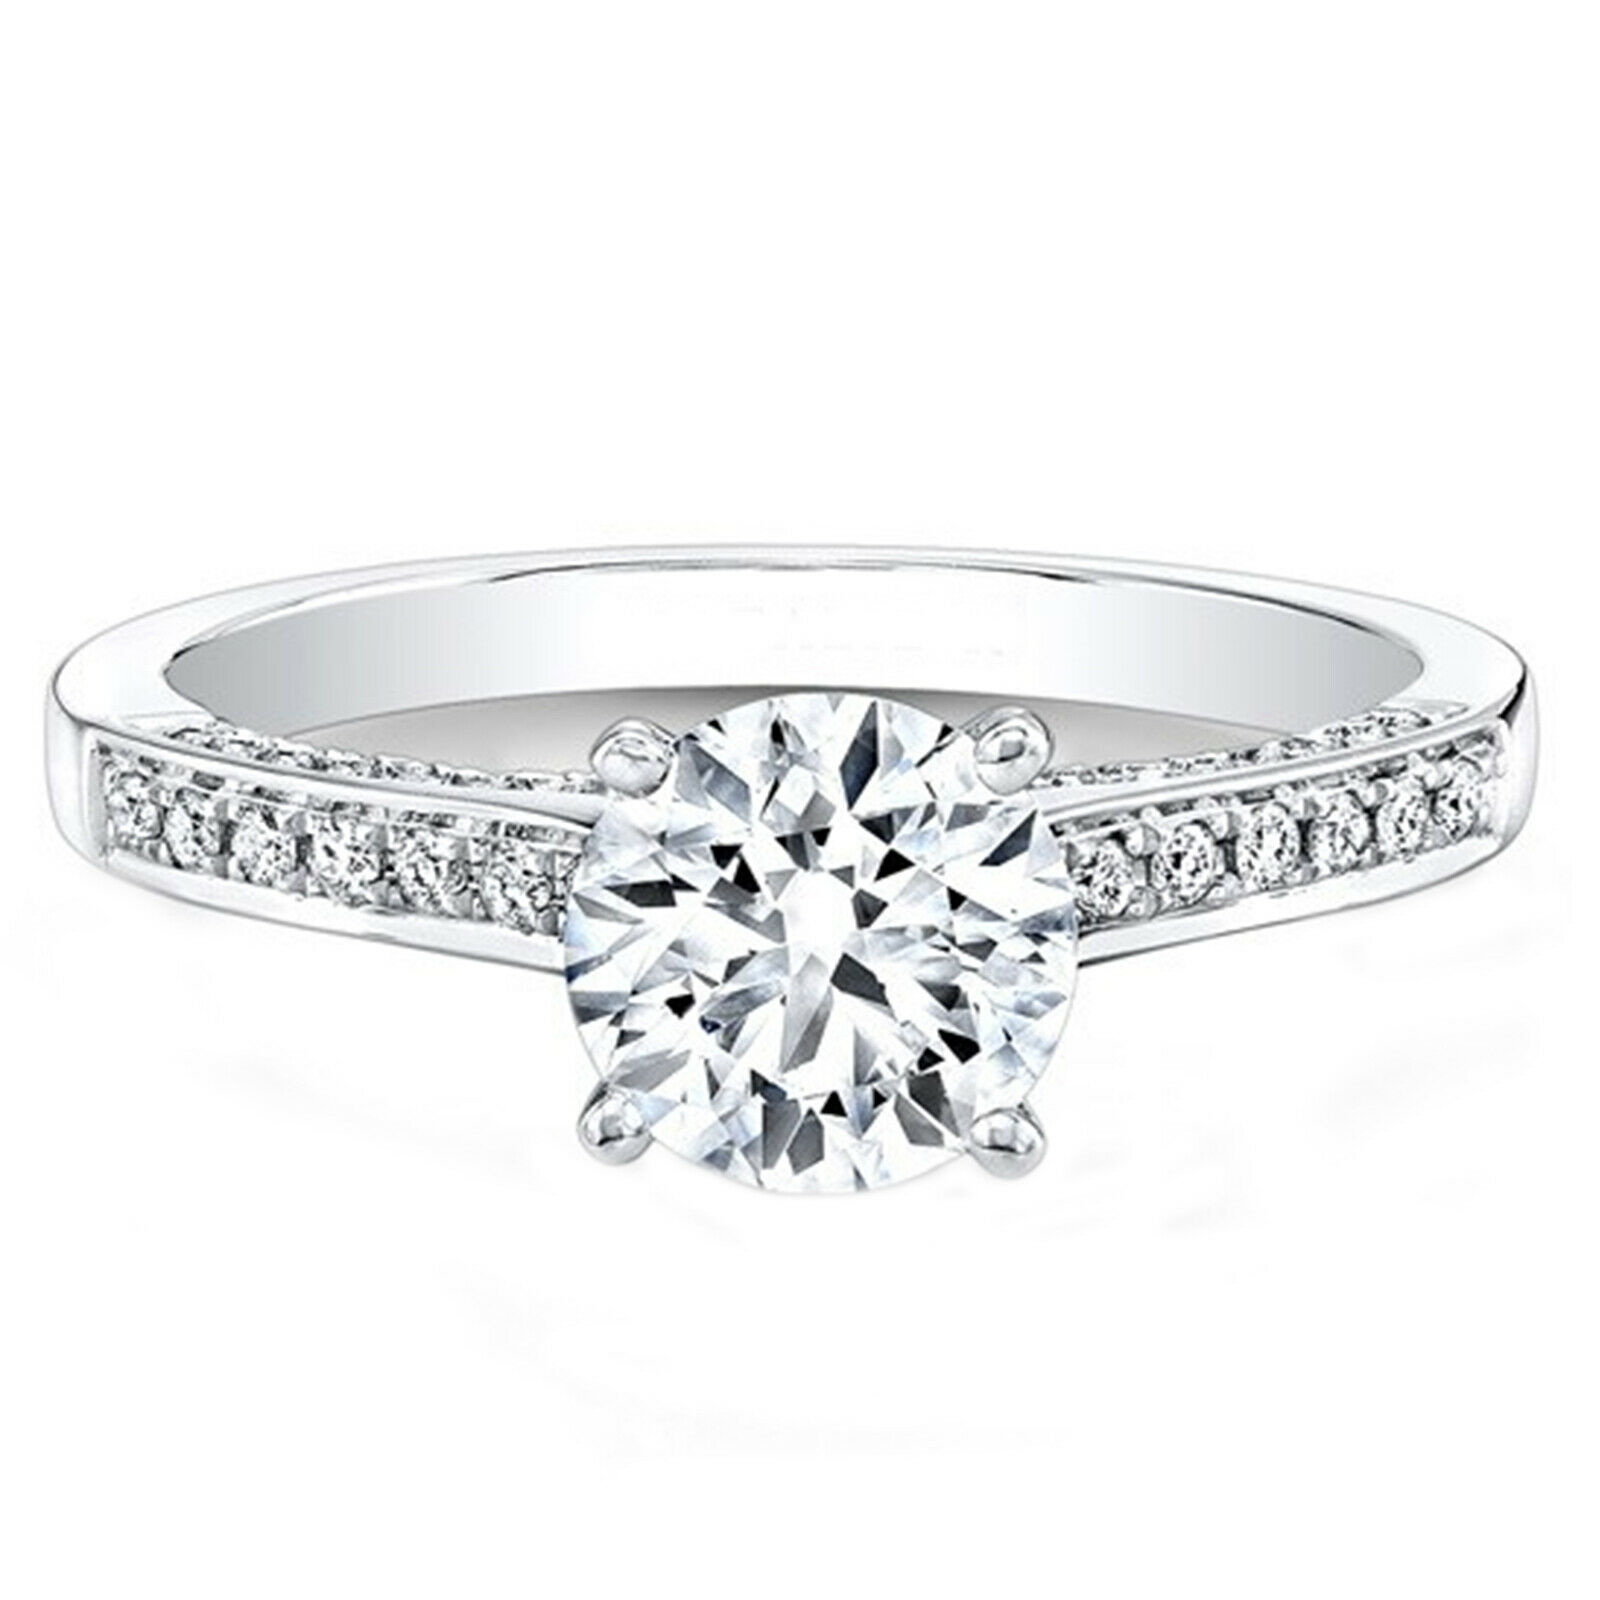 0.74 Carat Round Cut Diamond 14Kt Solid White gold Engagement Rings Size 5.5 6 7